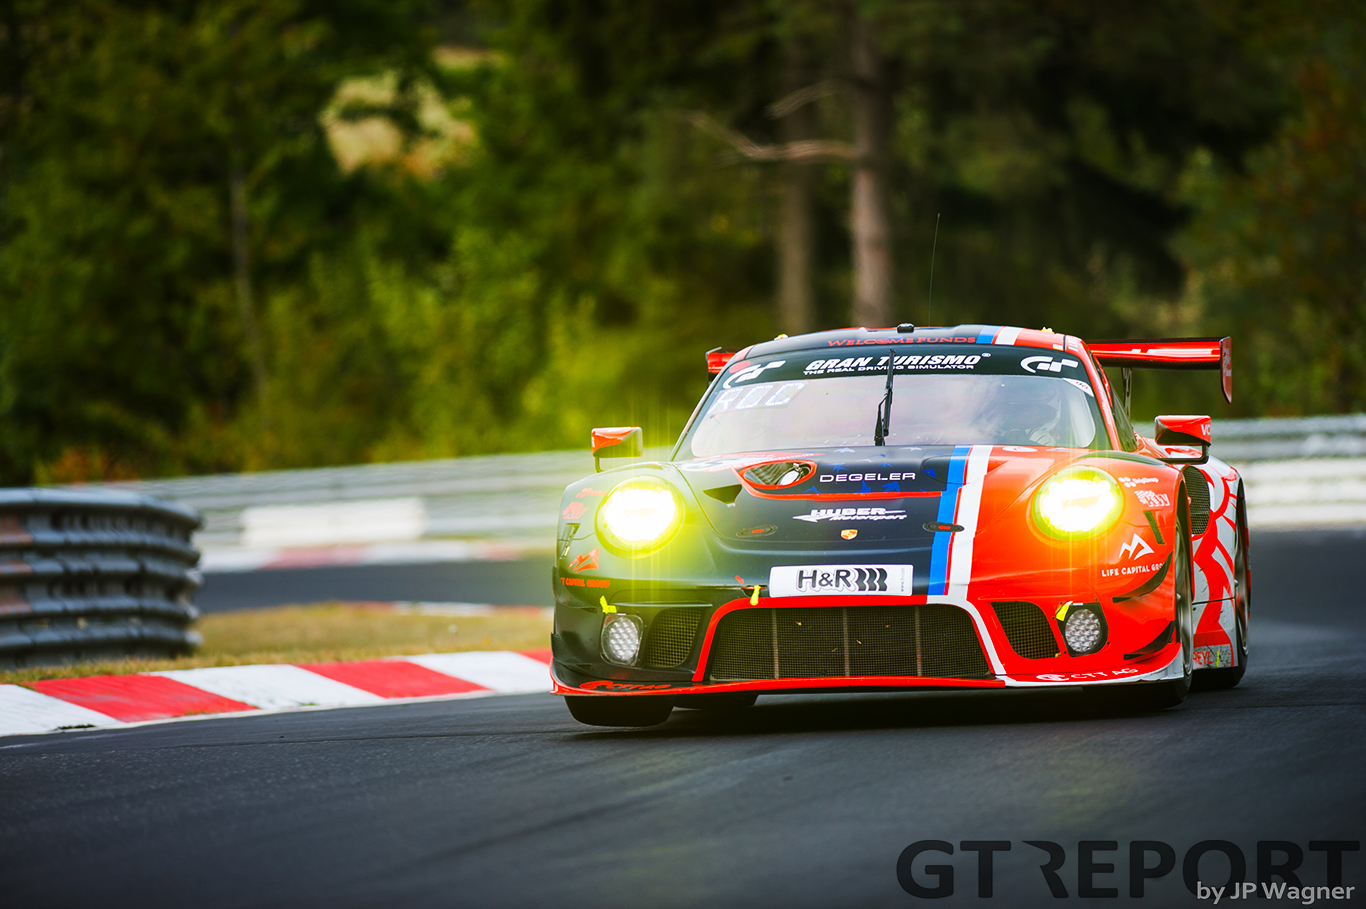 Nürburgring 24 Hours entry list update: Under 100 cars, Phoenix cancels #14 Audi, and new drivers